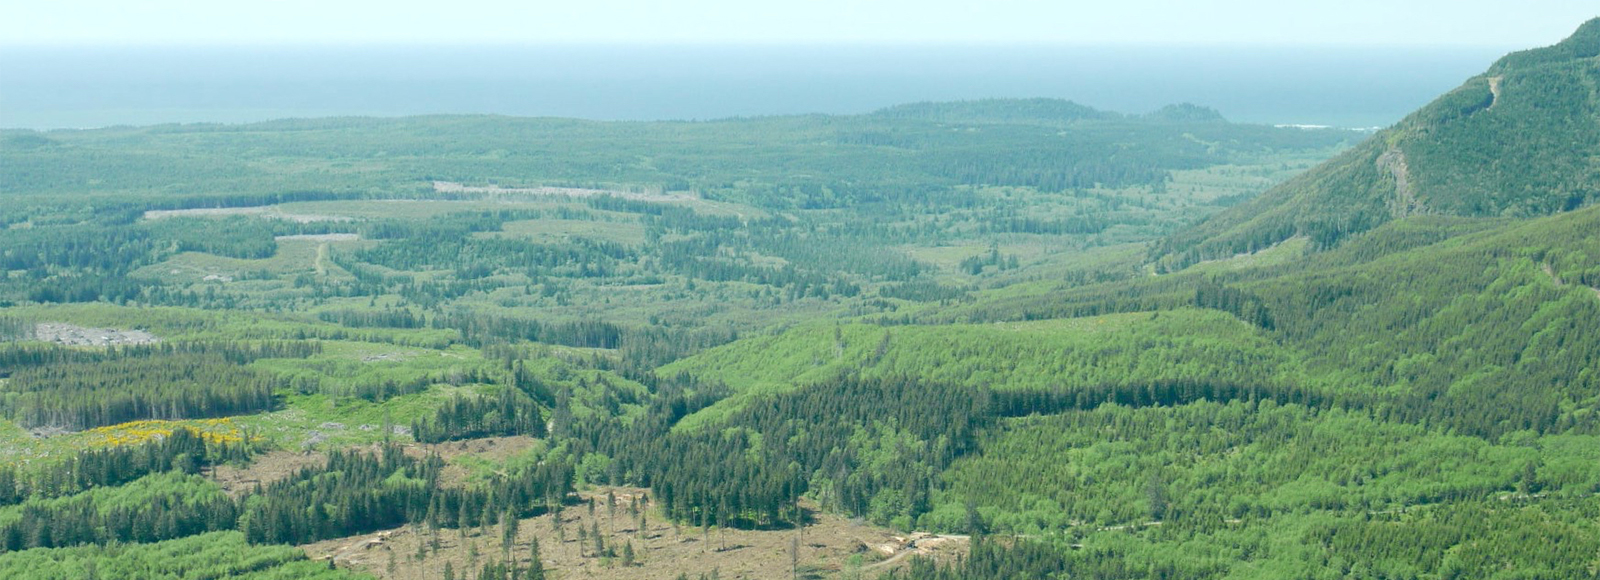 an aerial view of a patchwork of forest